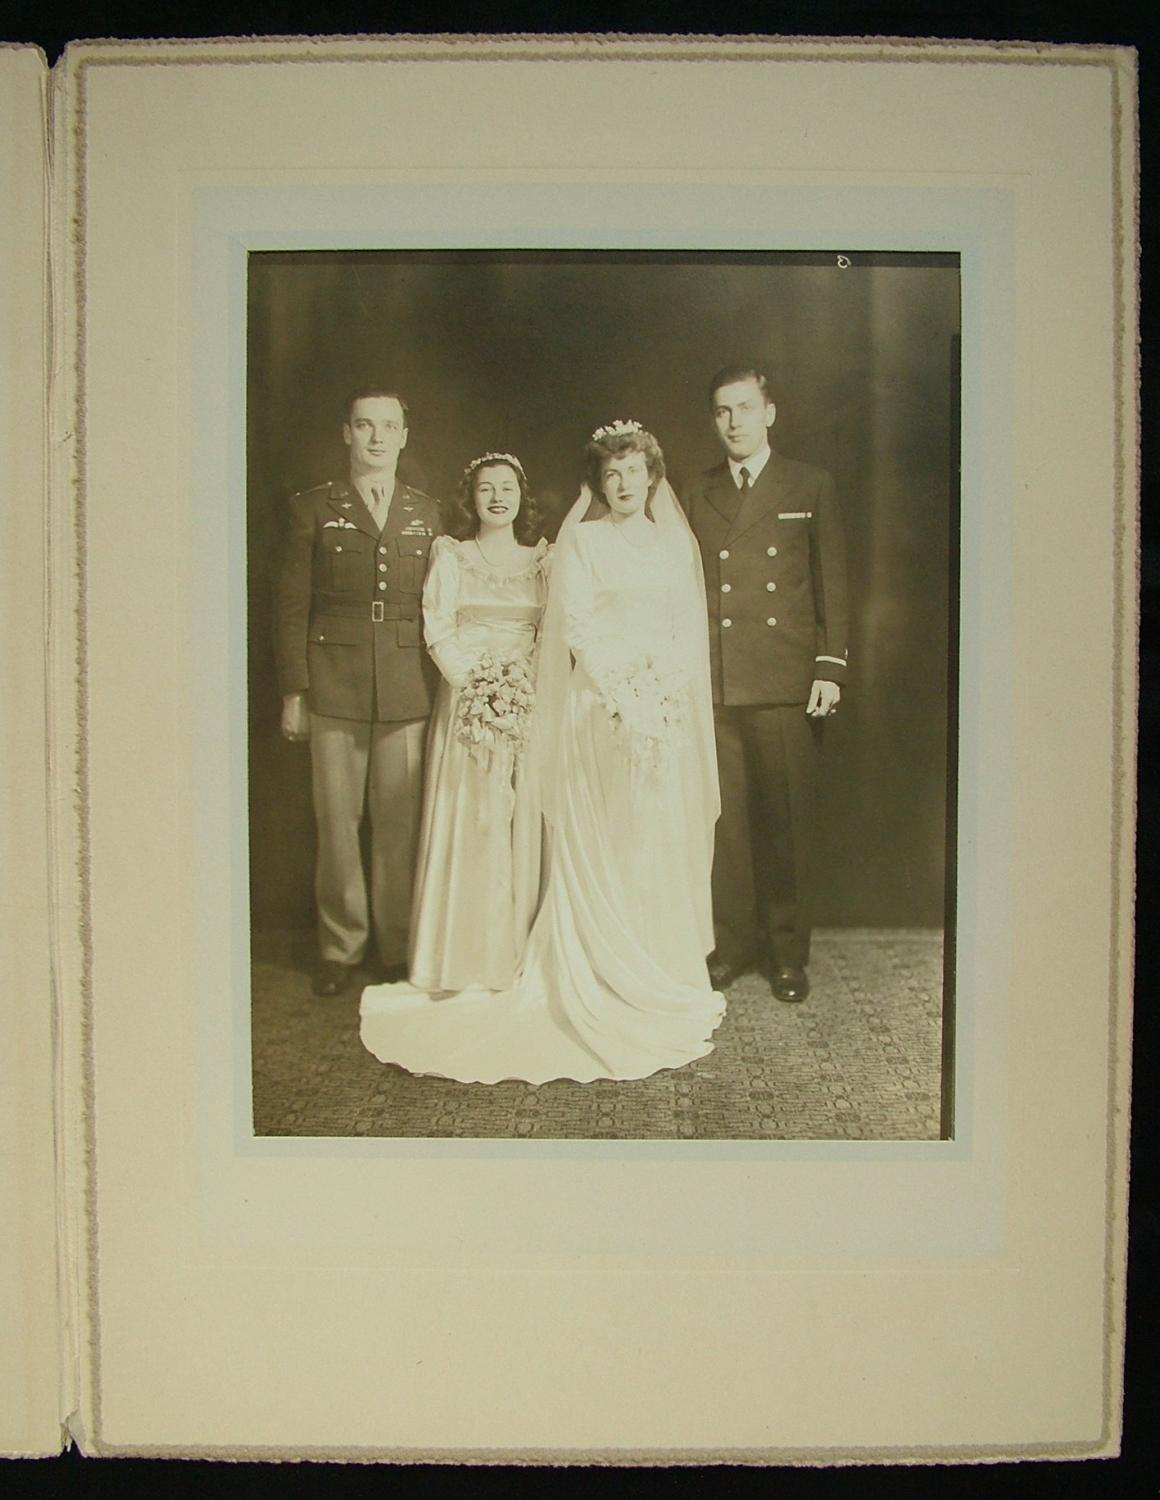 Wedding Photo, USAAF / RAF Pilot